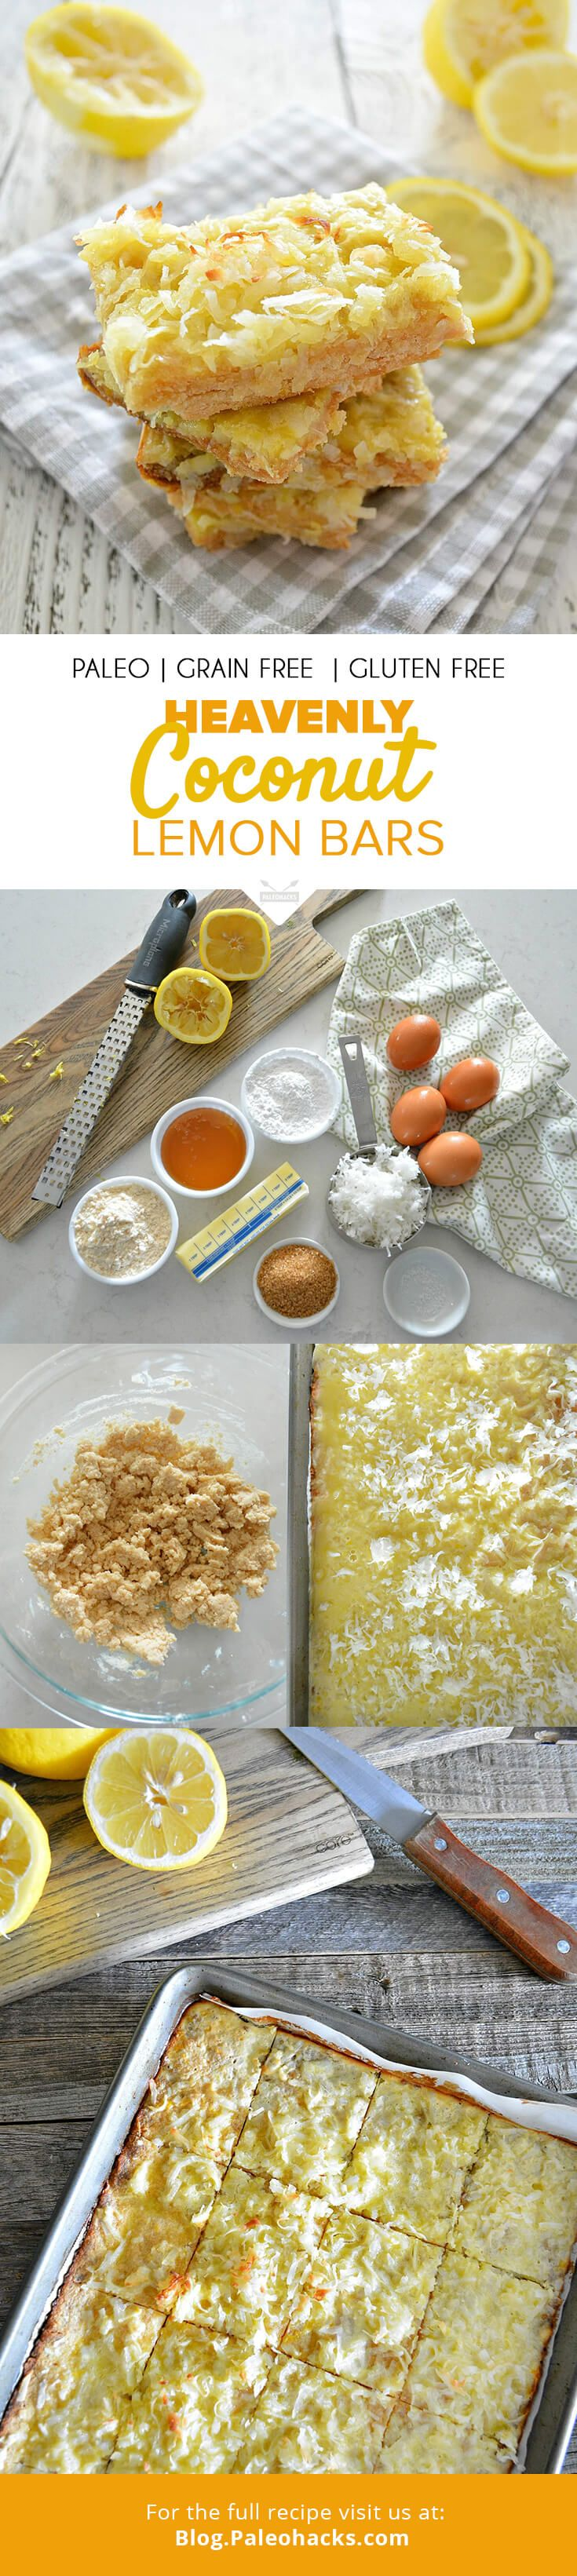 """Nothing says """"farewell summer"""" like these sweet and tangy dessert bars, bursting with fresh coconut and lemon flavors topped on a buttery coconut flour crust."""